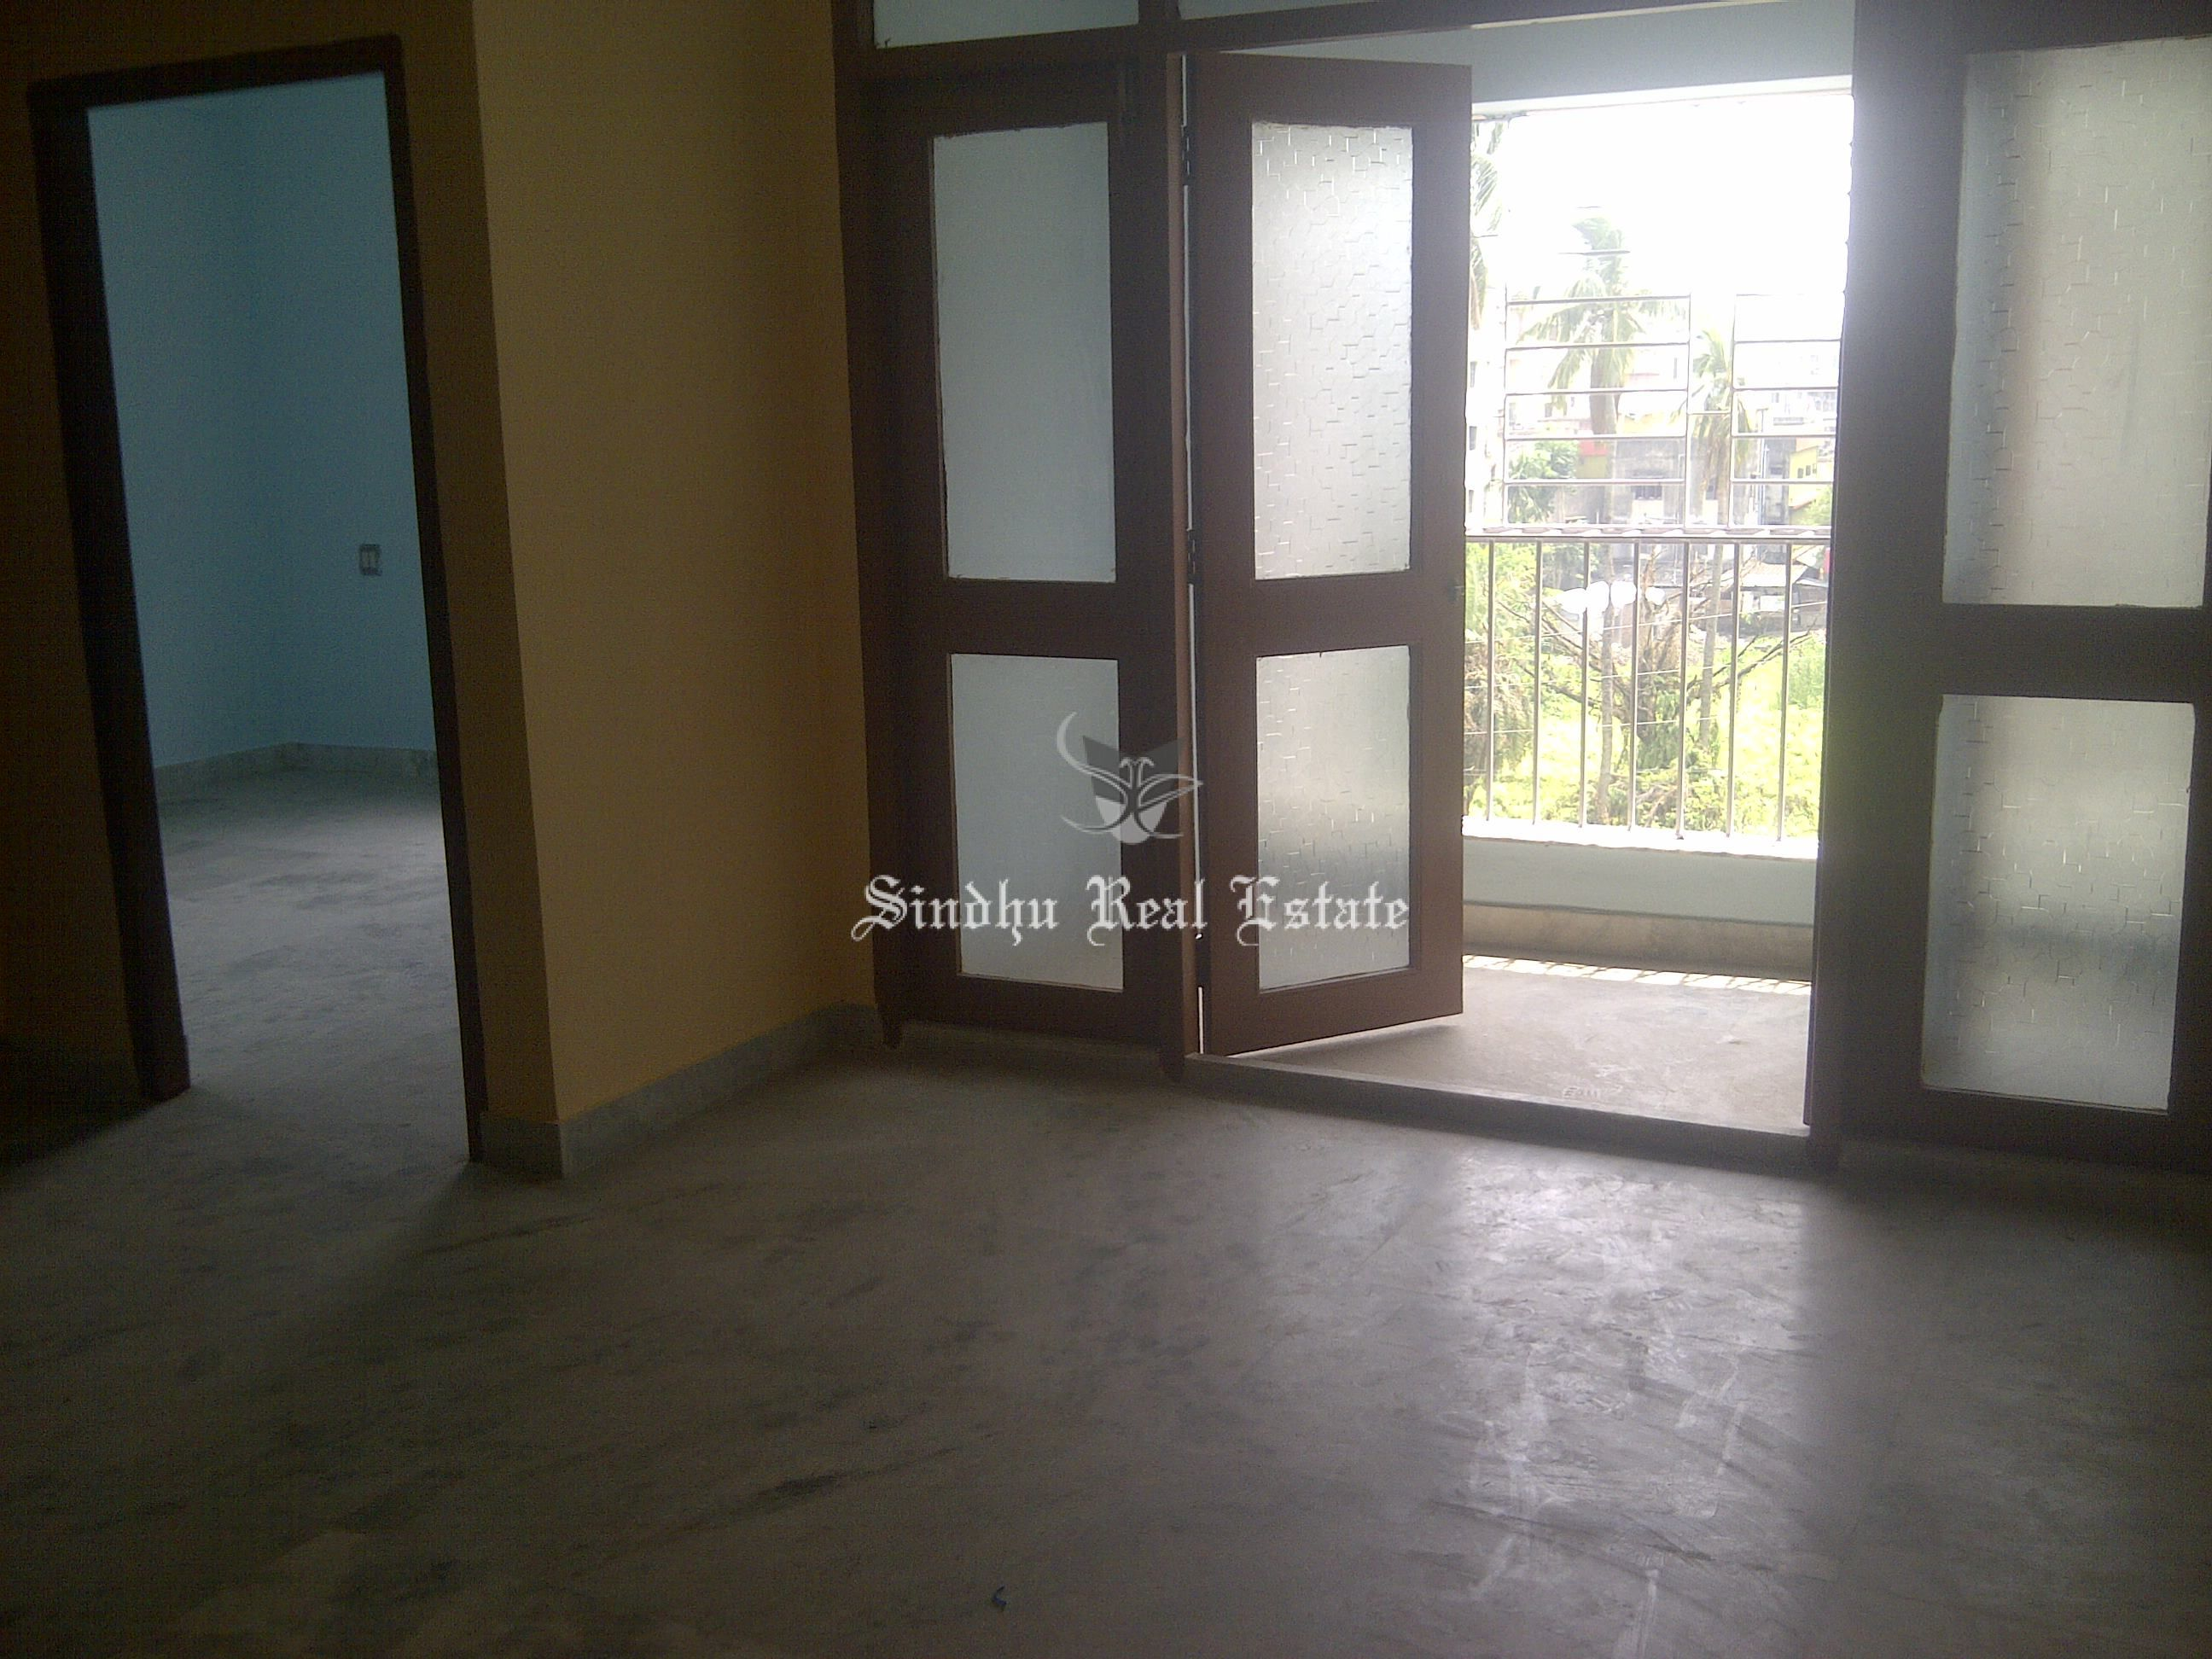 RESIDENTIAL FLAT FOR SALE IN SALT LAKE